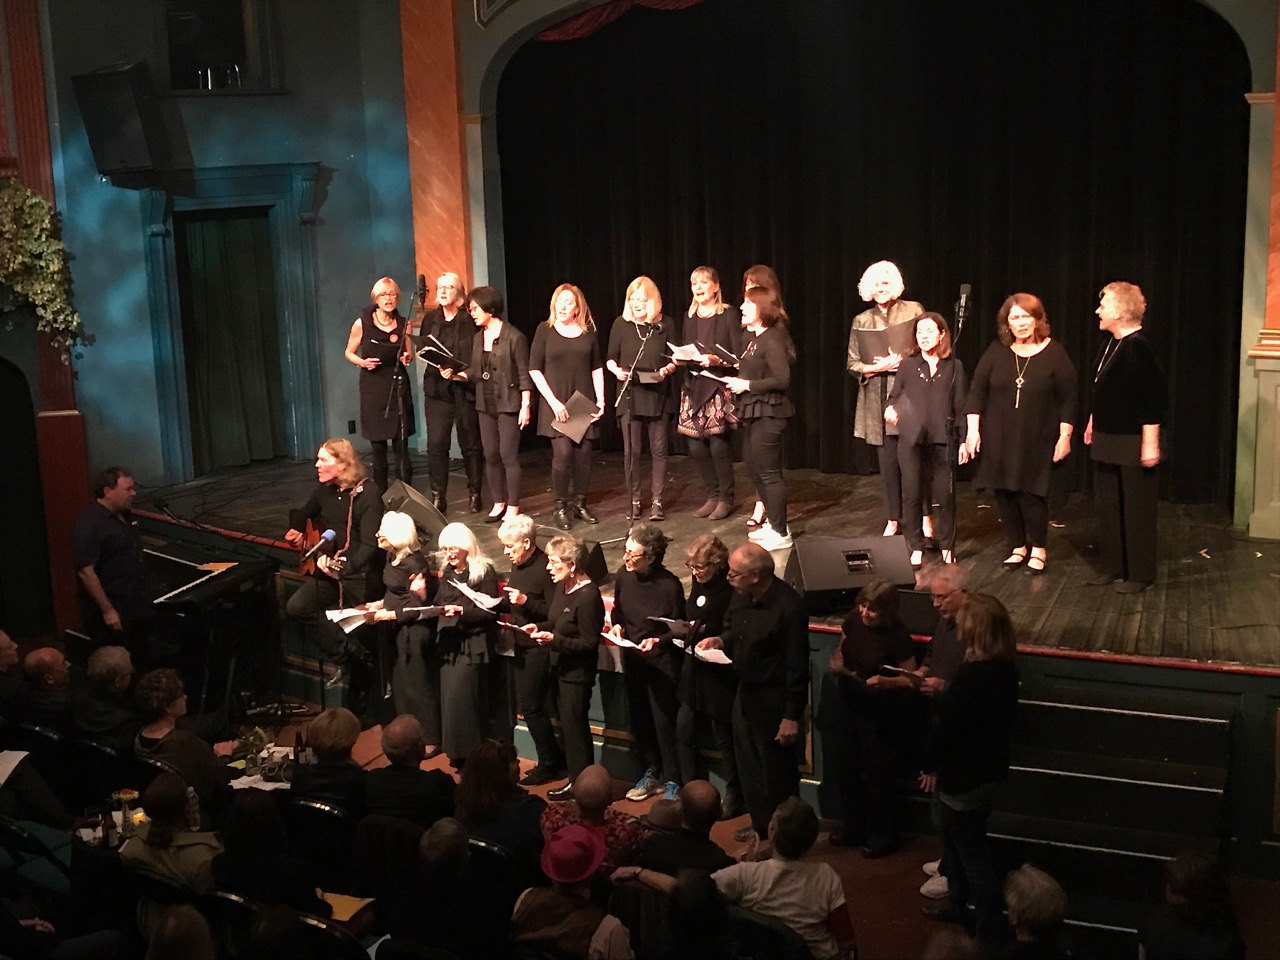 Music director Reed Fromer leads a sing-along of classic protest tunes with the Shady Ladies and the Can-Do Singers. Photo by George Osner.